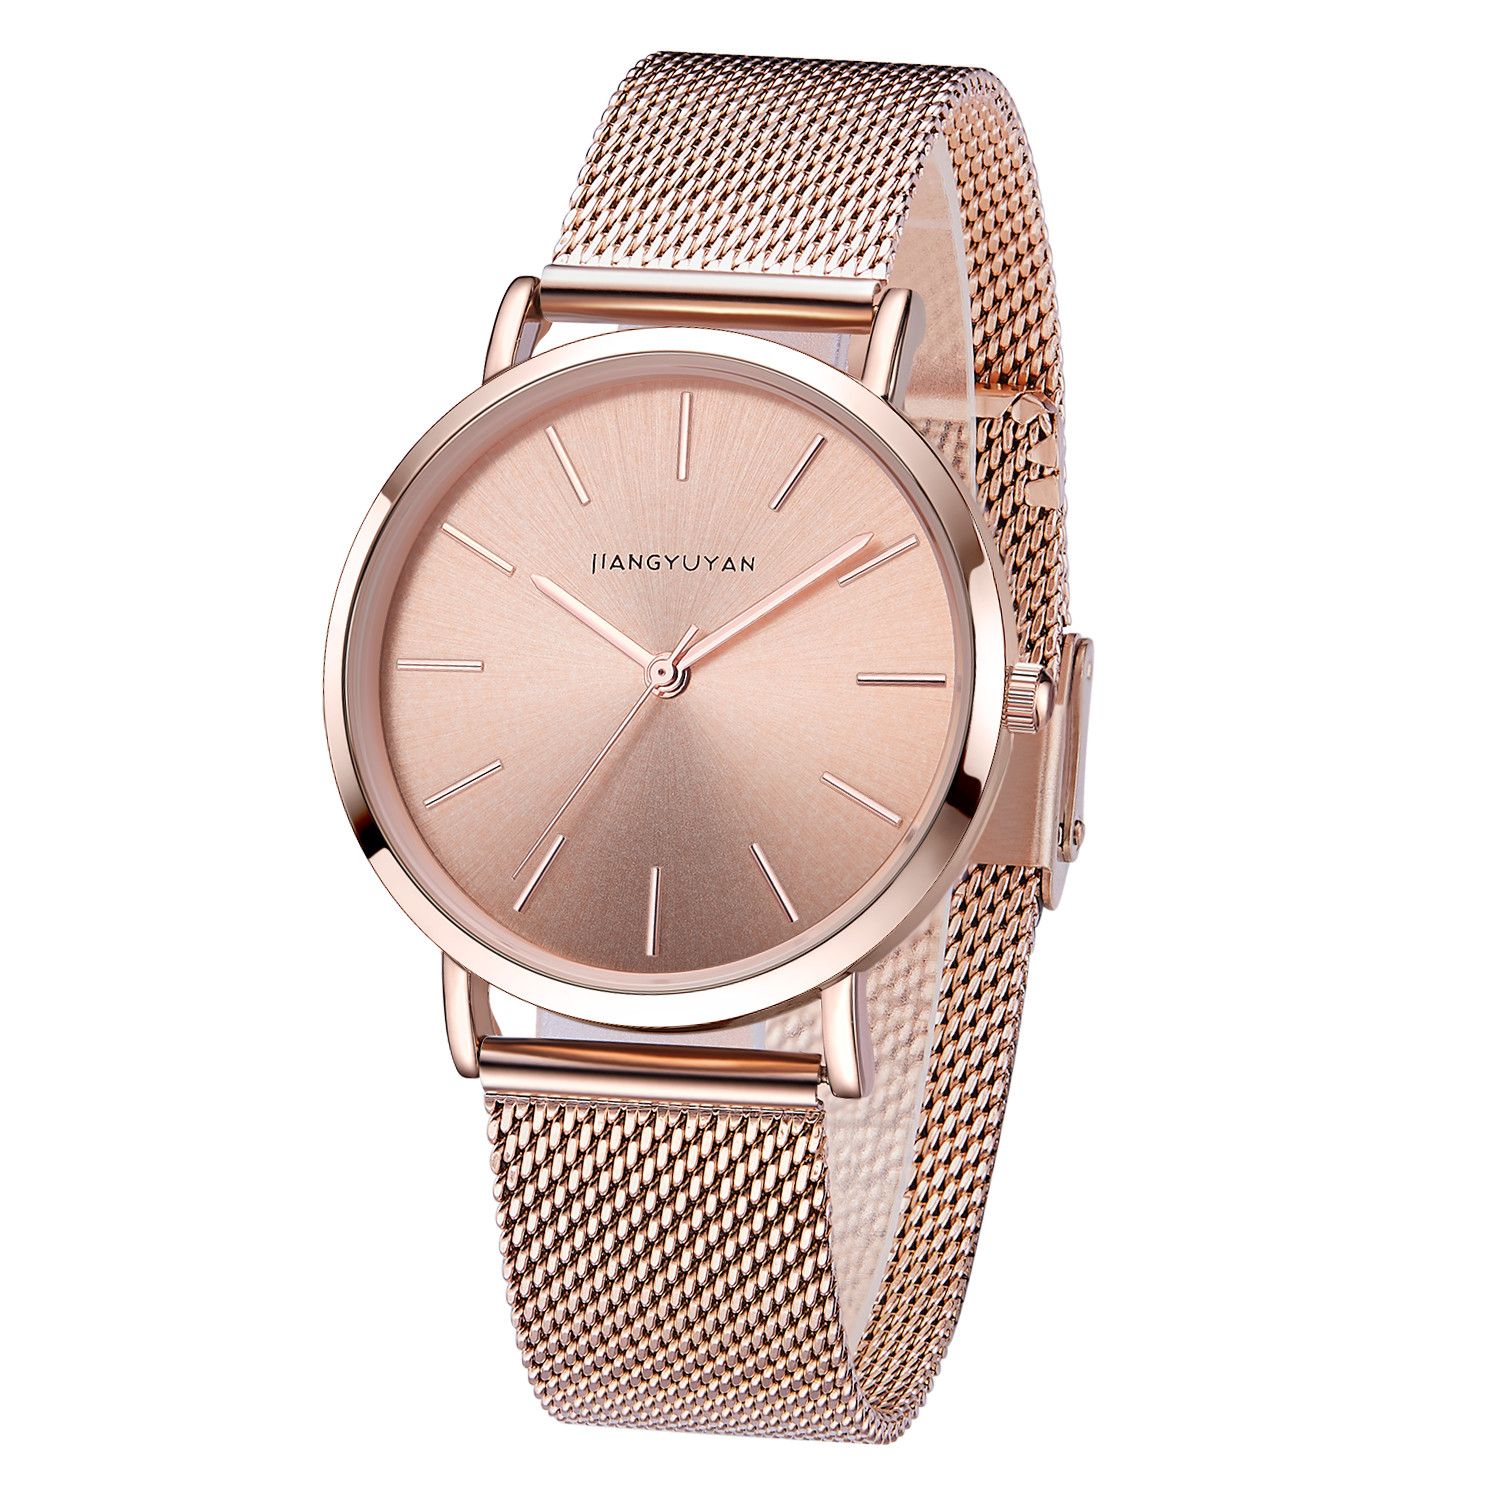 women watches gifts for ladies luxury designer waterproof stainless steel ladies watch quartz movement high quality 1650